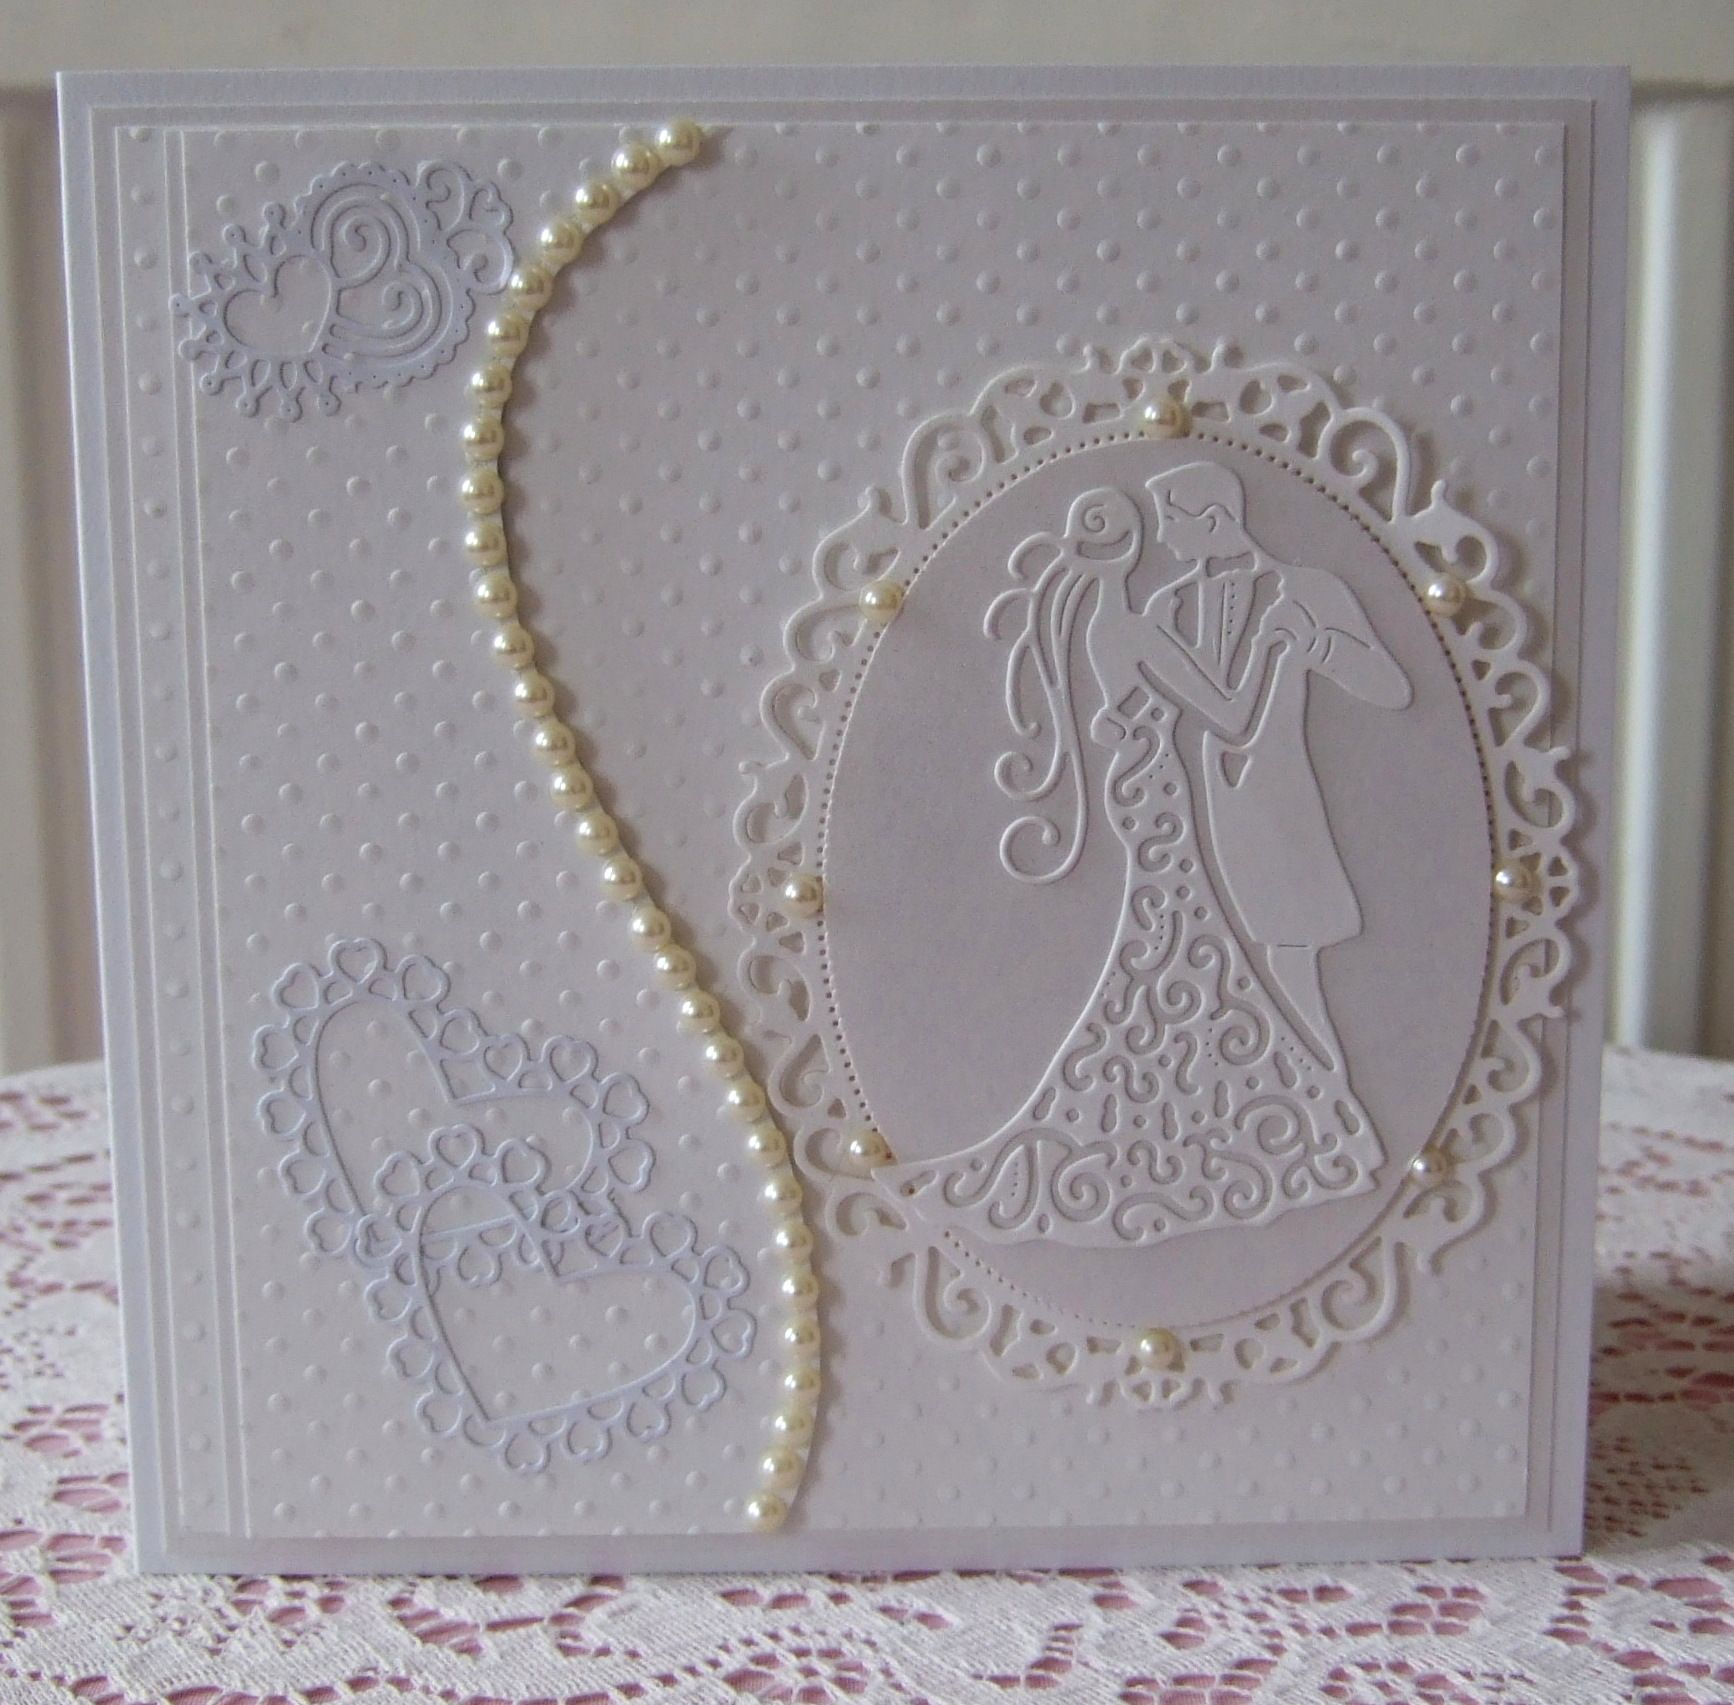 Card Making Ideas Using Tattered Lace Dies Part - 44: Made Using Spellbinders And Tattered Lace Dies And Embossing Folders.  Wedding Anniversary CardsWedding ...